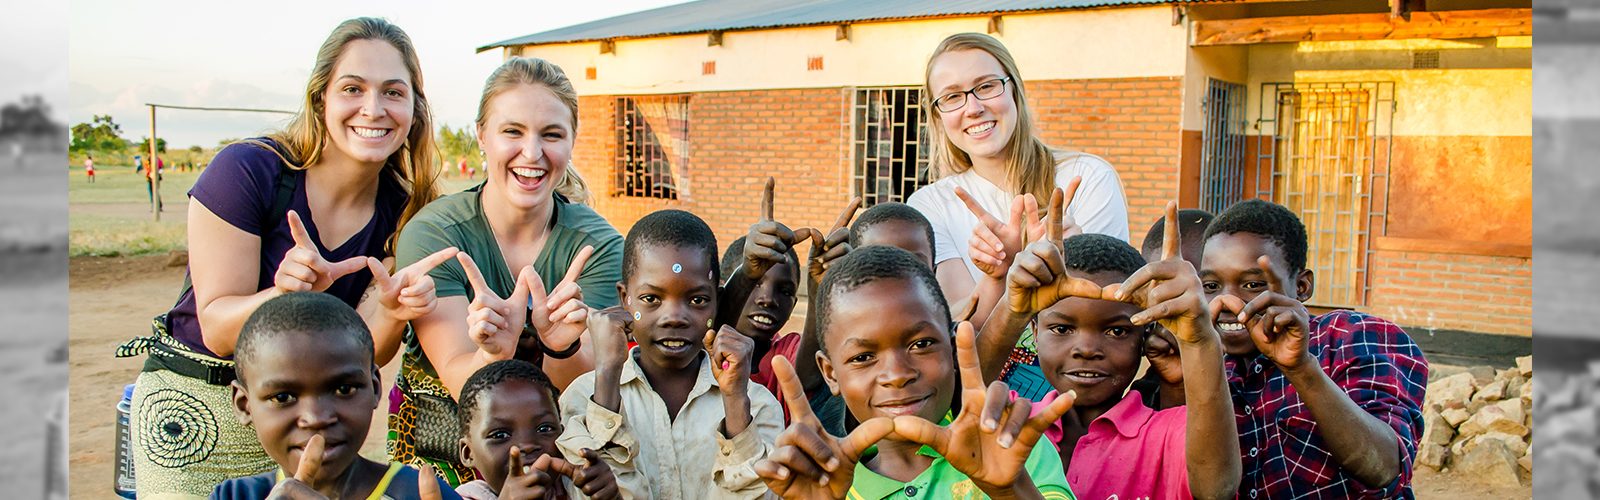 """Student Nurses in Malawi, posing with cute, Malawi children making the """"W"""" symbol with their hands."""